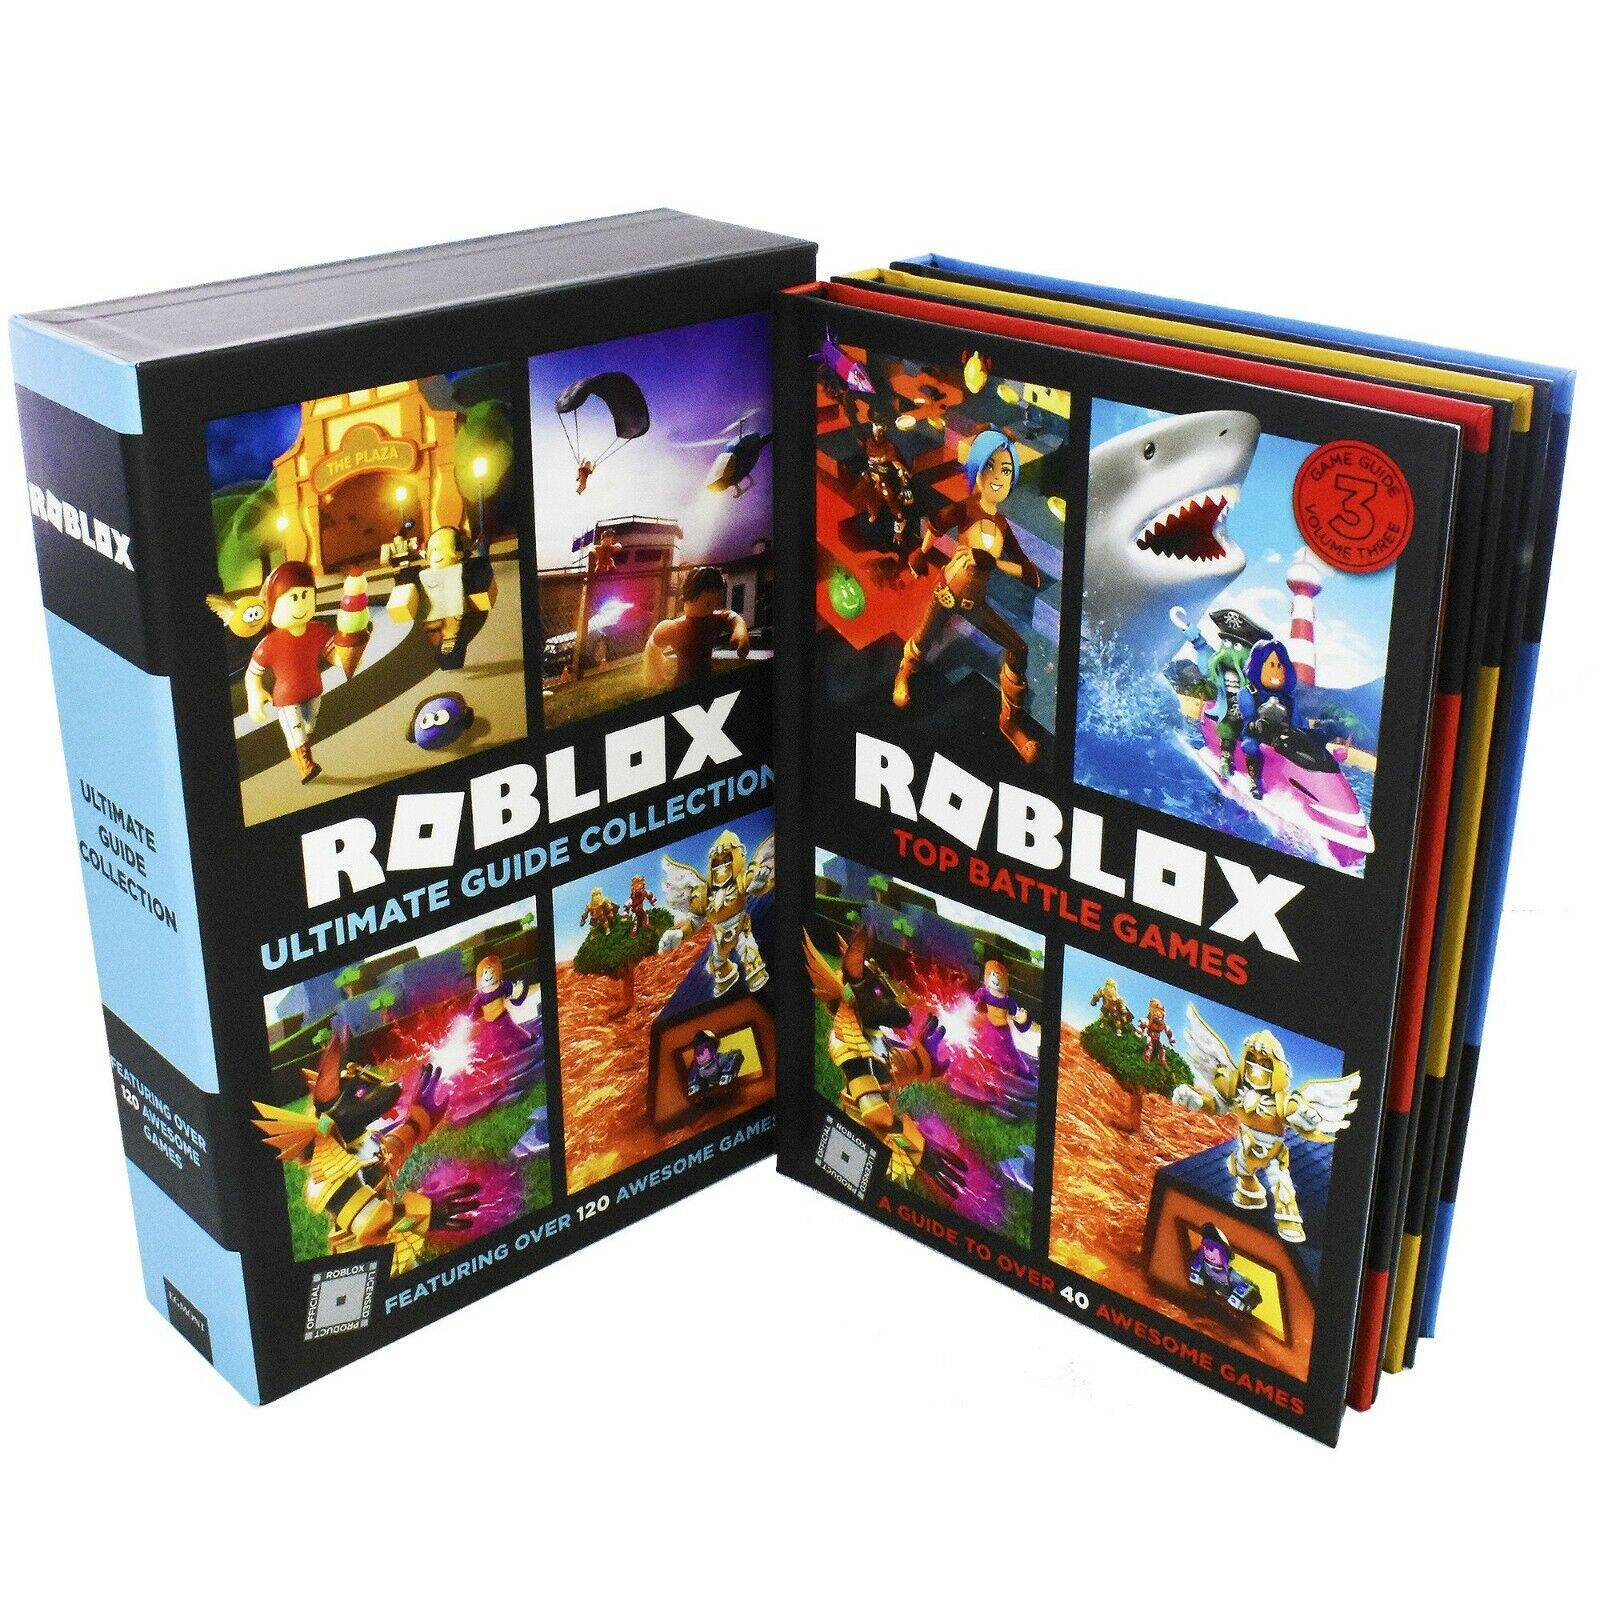 Roblox Ultimate Guide Collection Roblox Ultimate Guide 3 Books Children Collection Hardback By David Jagneaux 9781405297226 Ebay